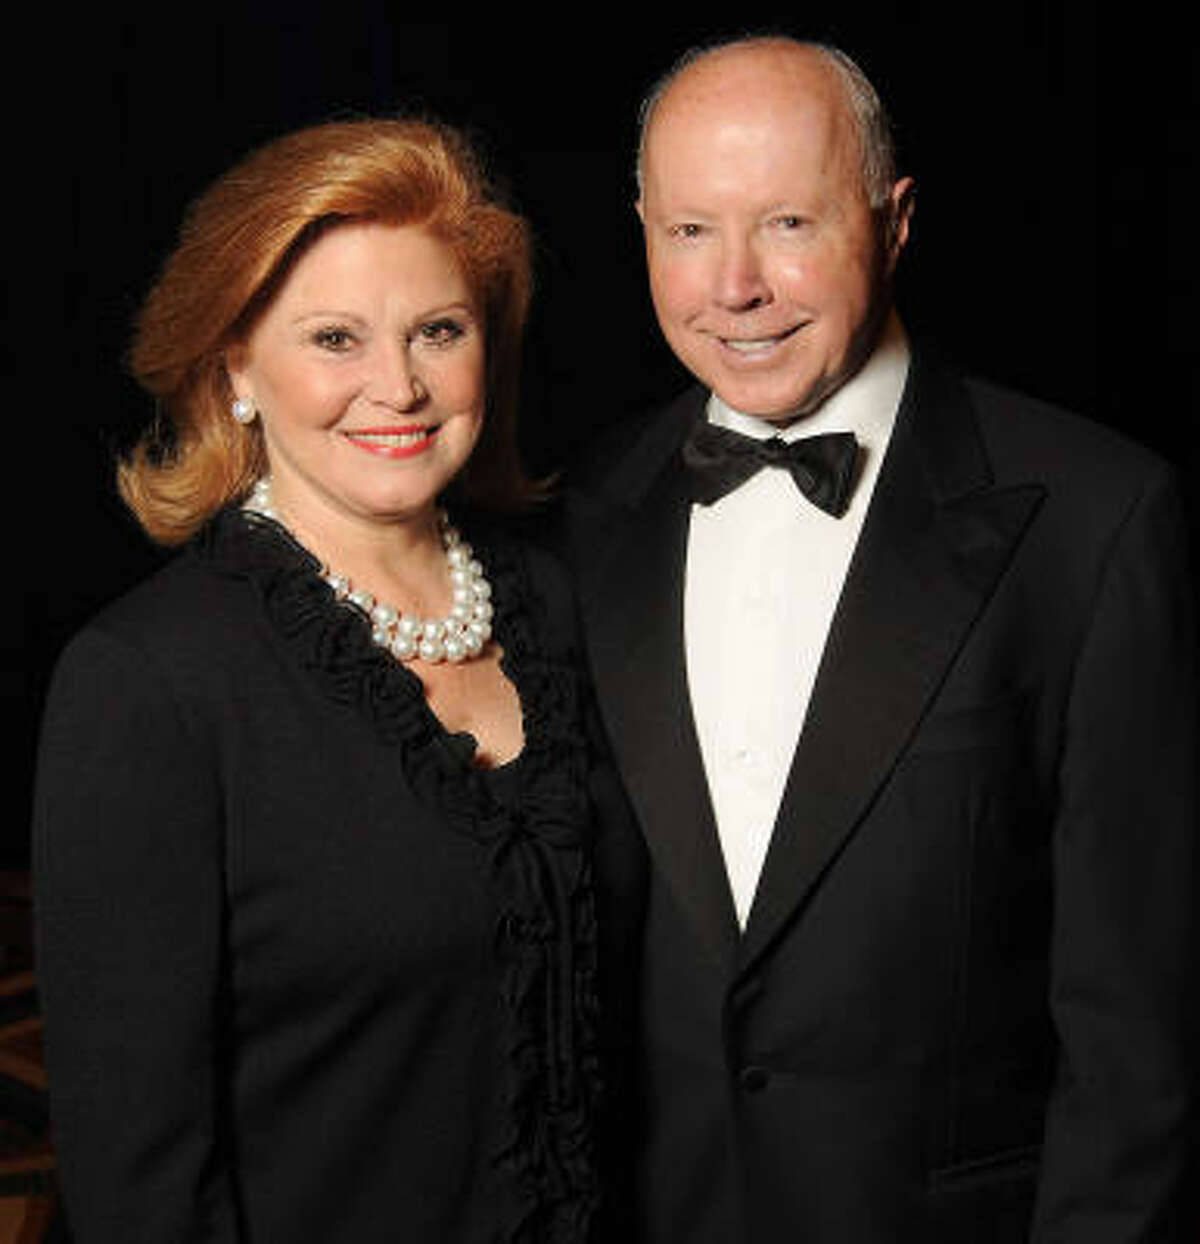 Honorees Jan and Dan Duncan at the Denton A. Cooley Leadership Award Dinner benefiting the Texas Heart Institute at the Hilton Americas-Houston.